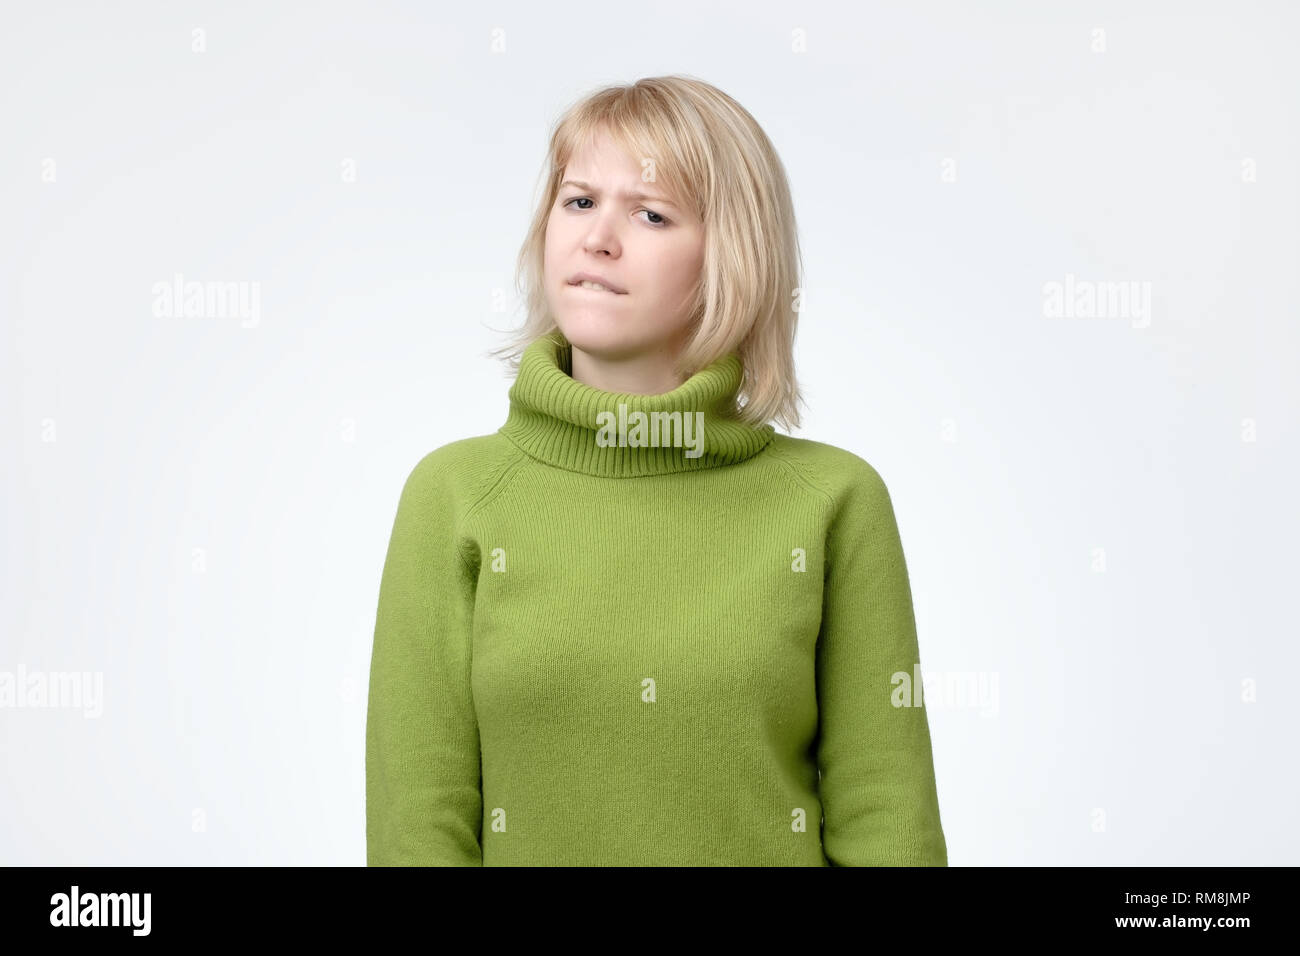 Beautiful young woman with blonde hair biting her lips with thoughtful doubtful expression Stock Photo